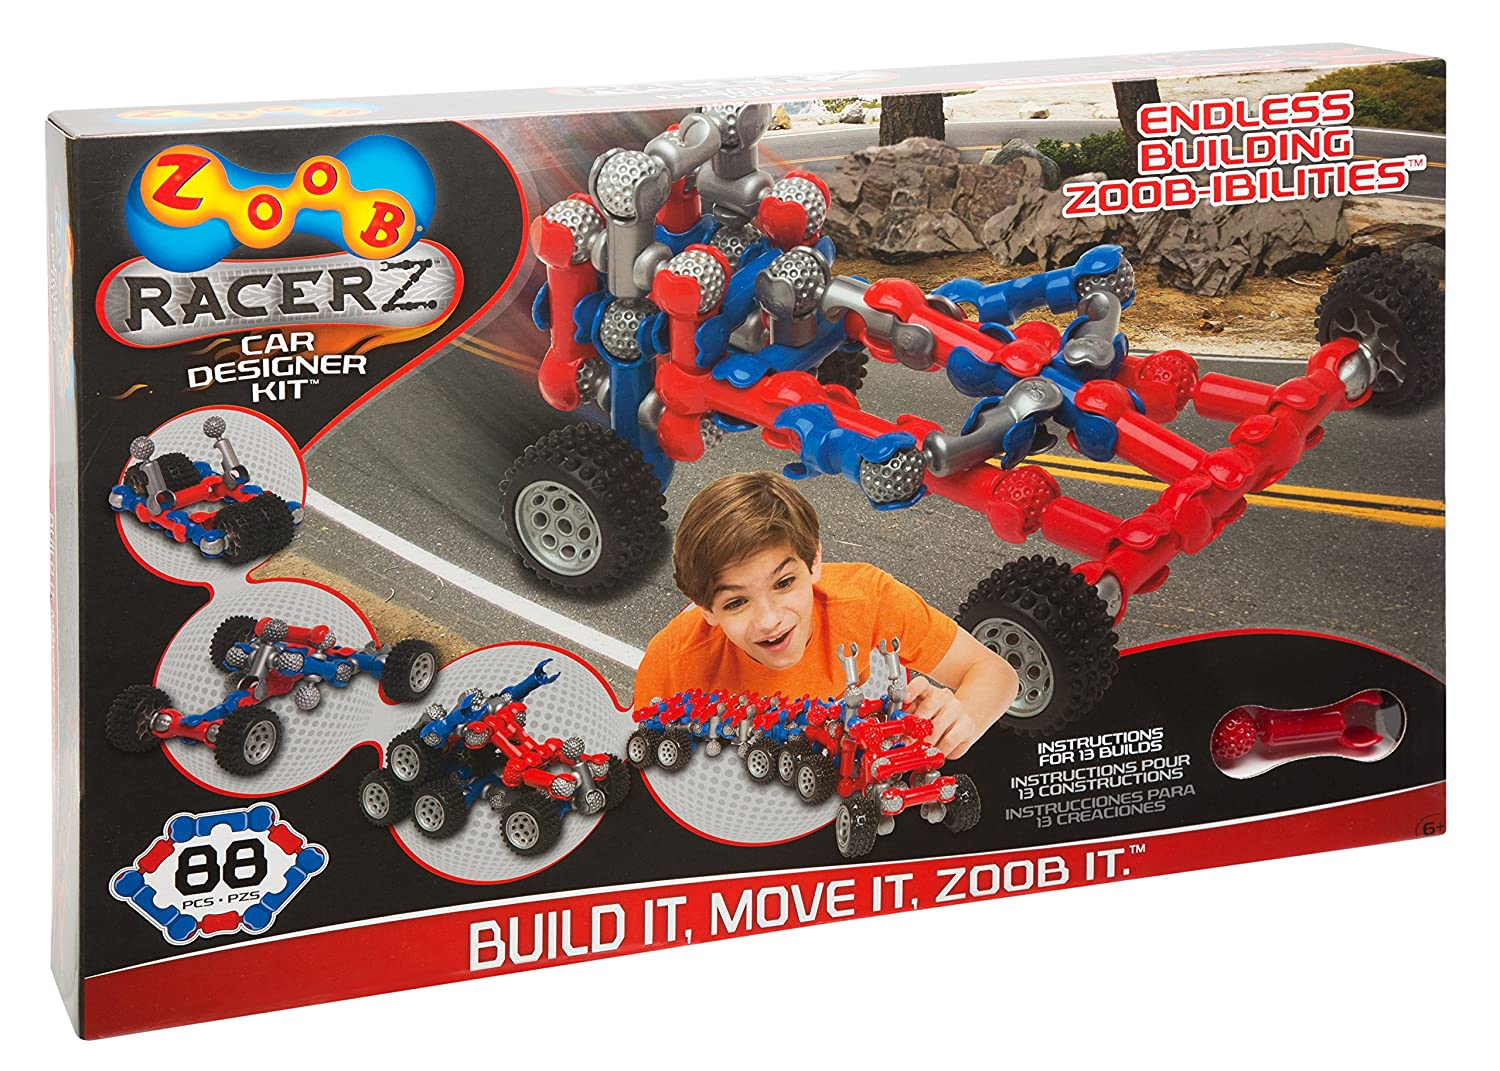 Cool Toys For Big Boys : Toys for big boys the best teen gift canyon